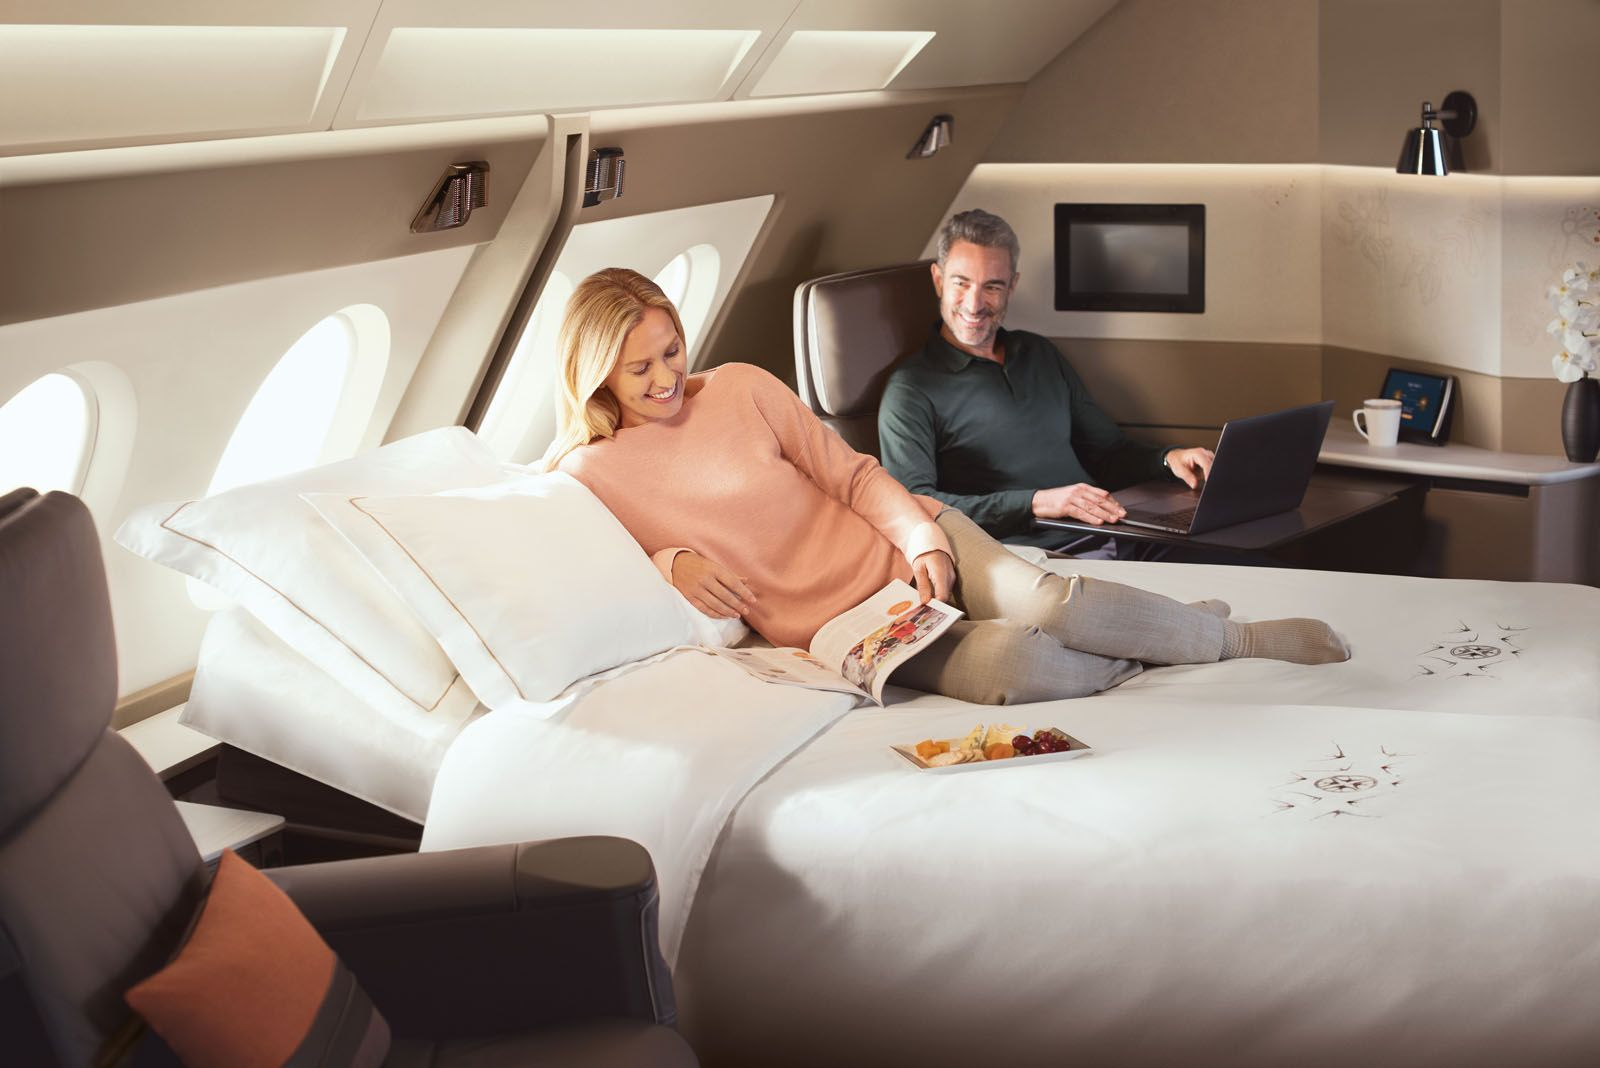 Singapore Airlines' Double Suites allows you to create a luxurious double bed on board